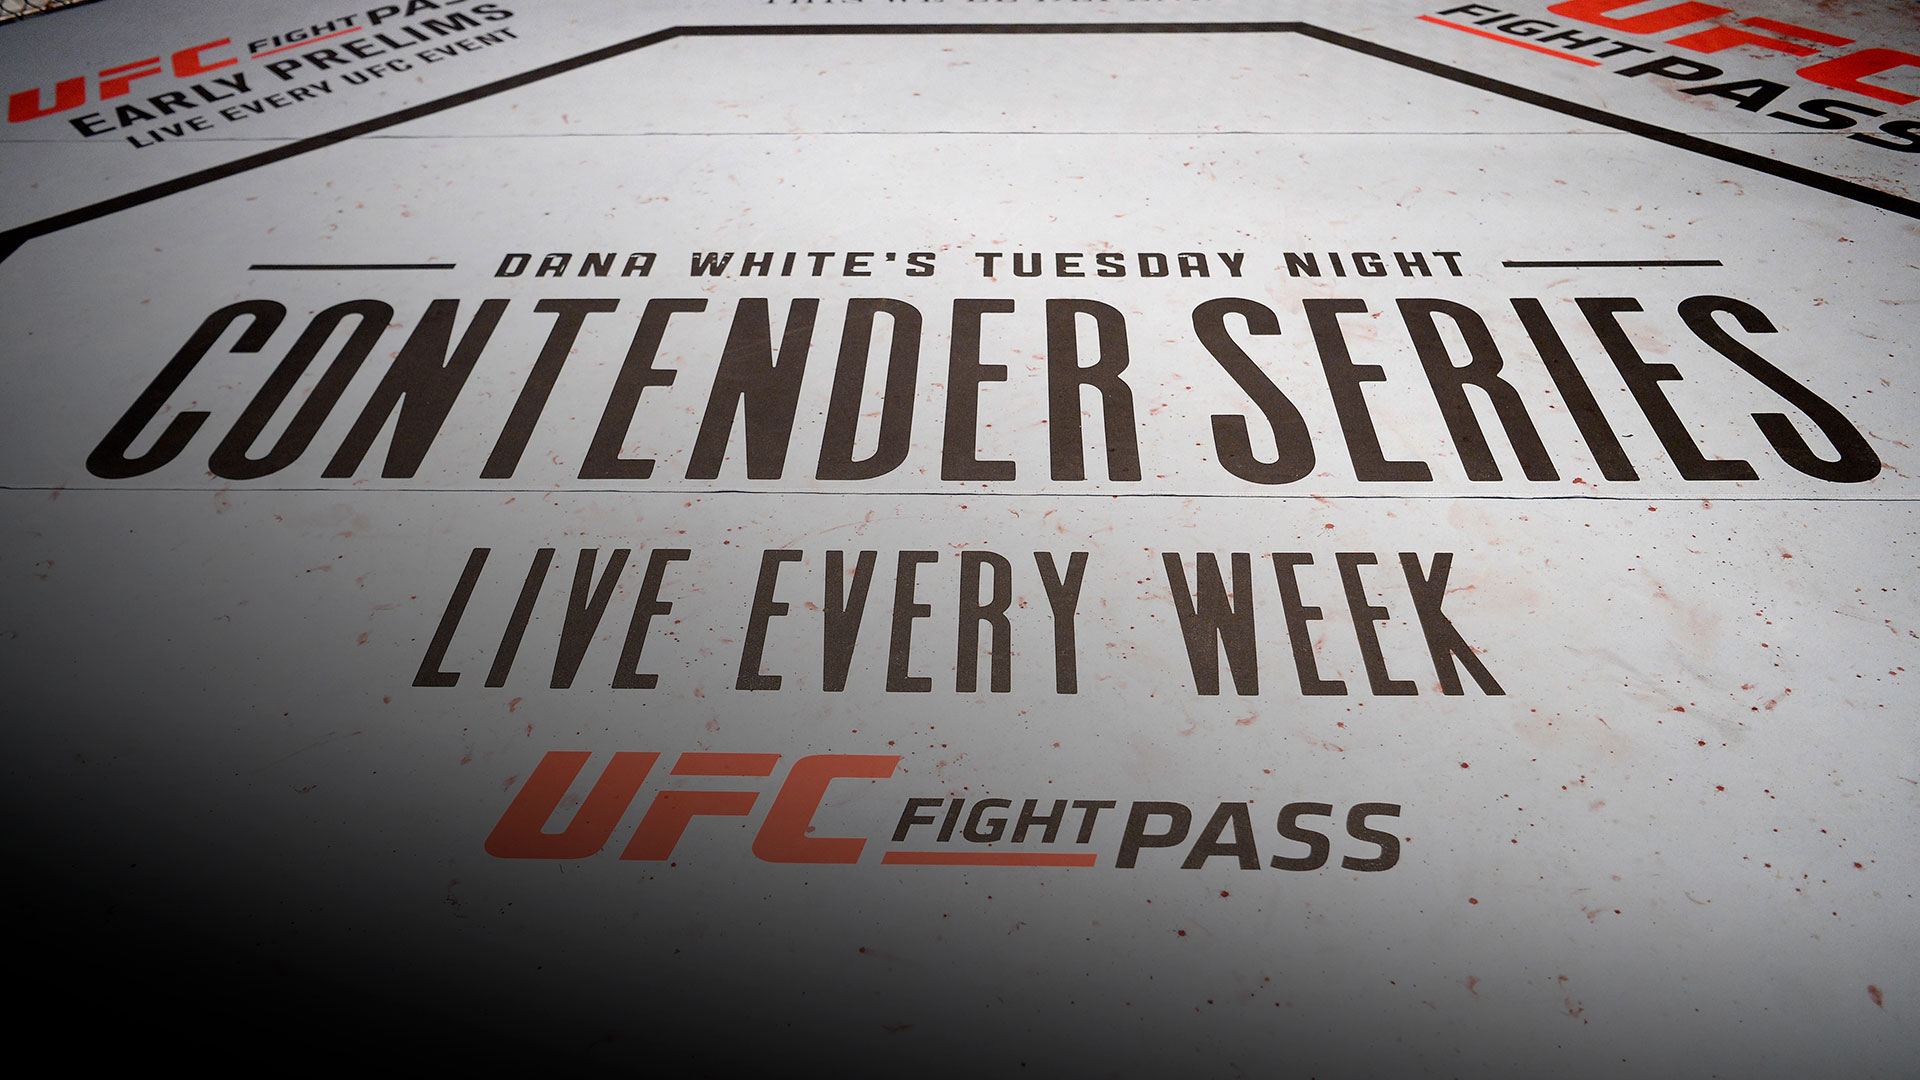 A general view of the Octagon during Dana White's Tuesday Night Contender Series at the TUF Gym on July 10, 2018 in Las Vegas, Nevada.